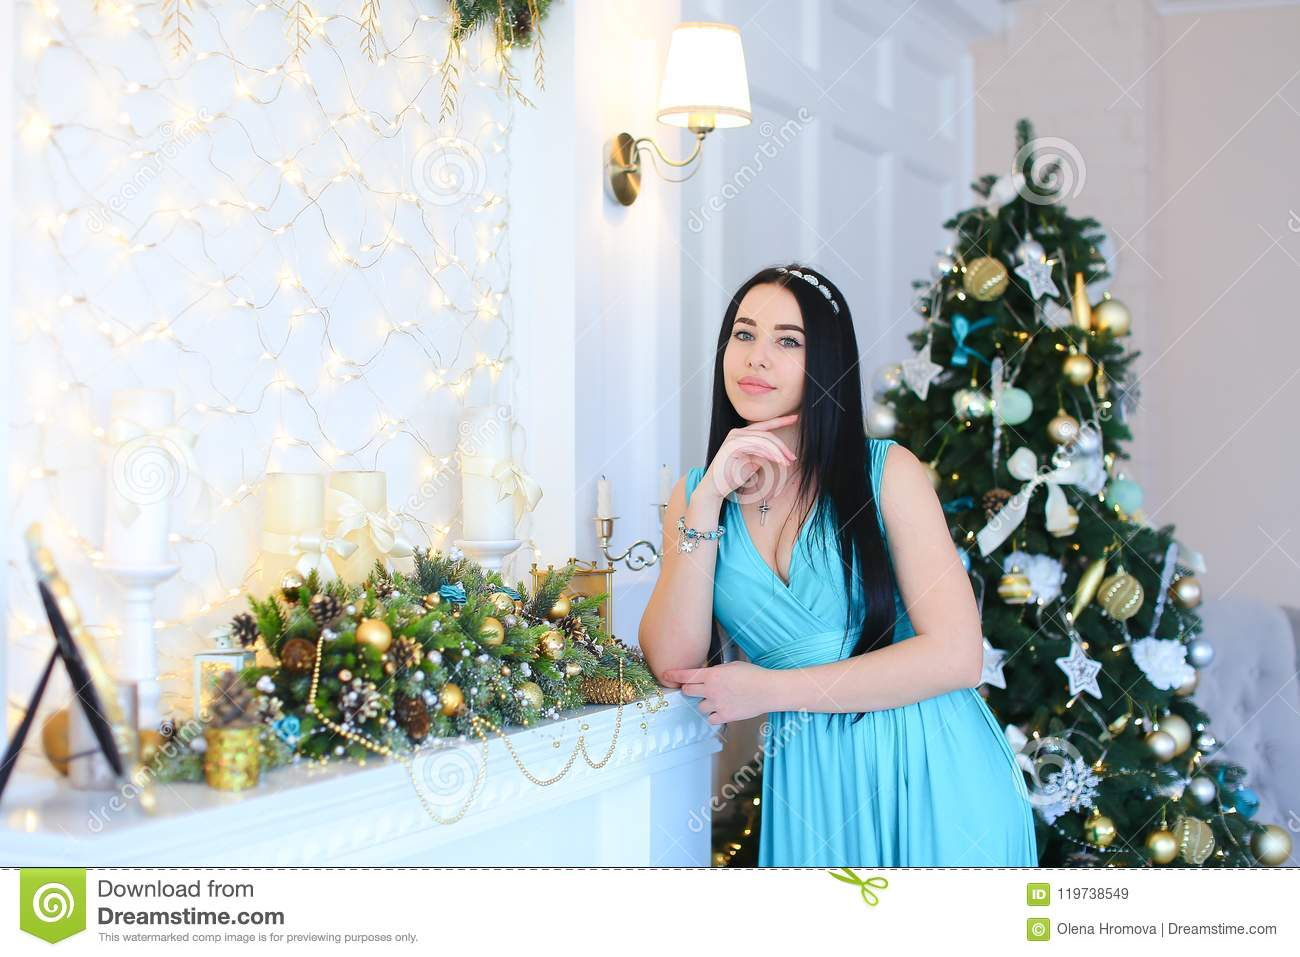 Young woman leaning against decorated fireplace, wearing blue dress and bracelet in Christmas tree background.